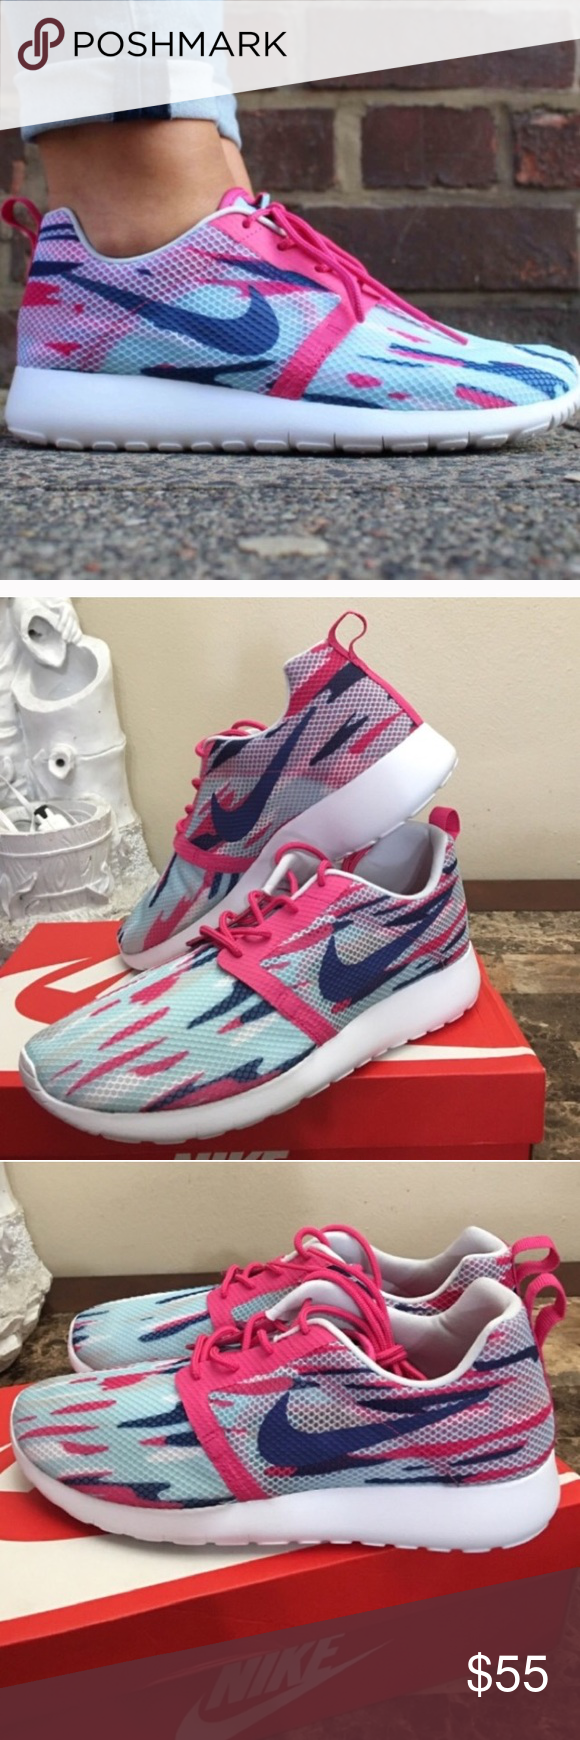 c52363870ecb NIKE ROSHE WOMENS SIZE 8 SHOES BLUE PINK WHITE Brand new without box. Shoes  are a youth size 6.5 which is a women s size 8. I have added a Nike  conversion ...